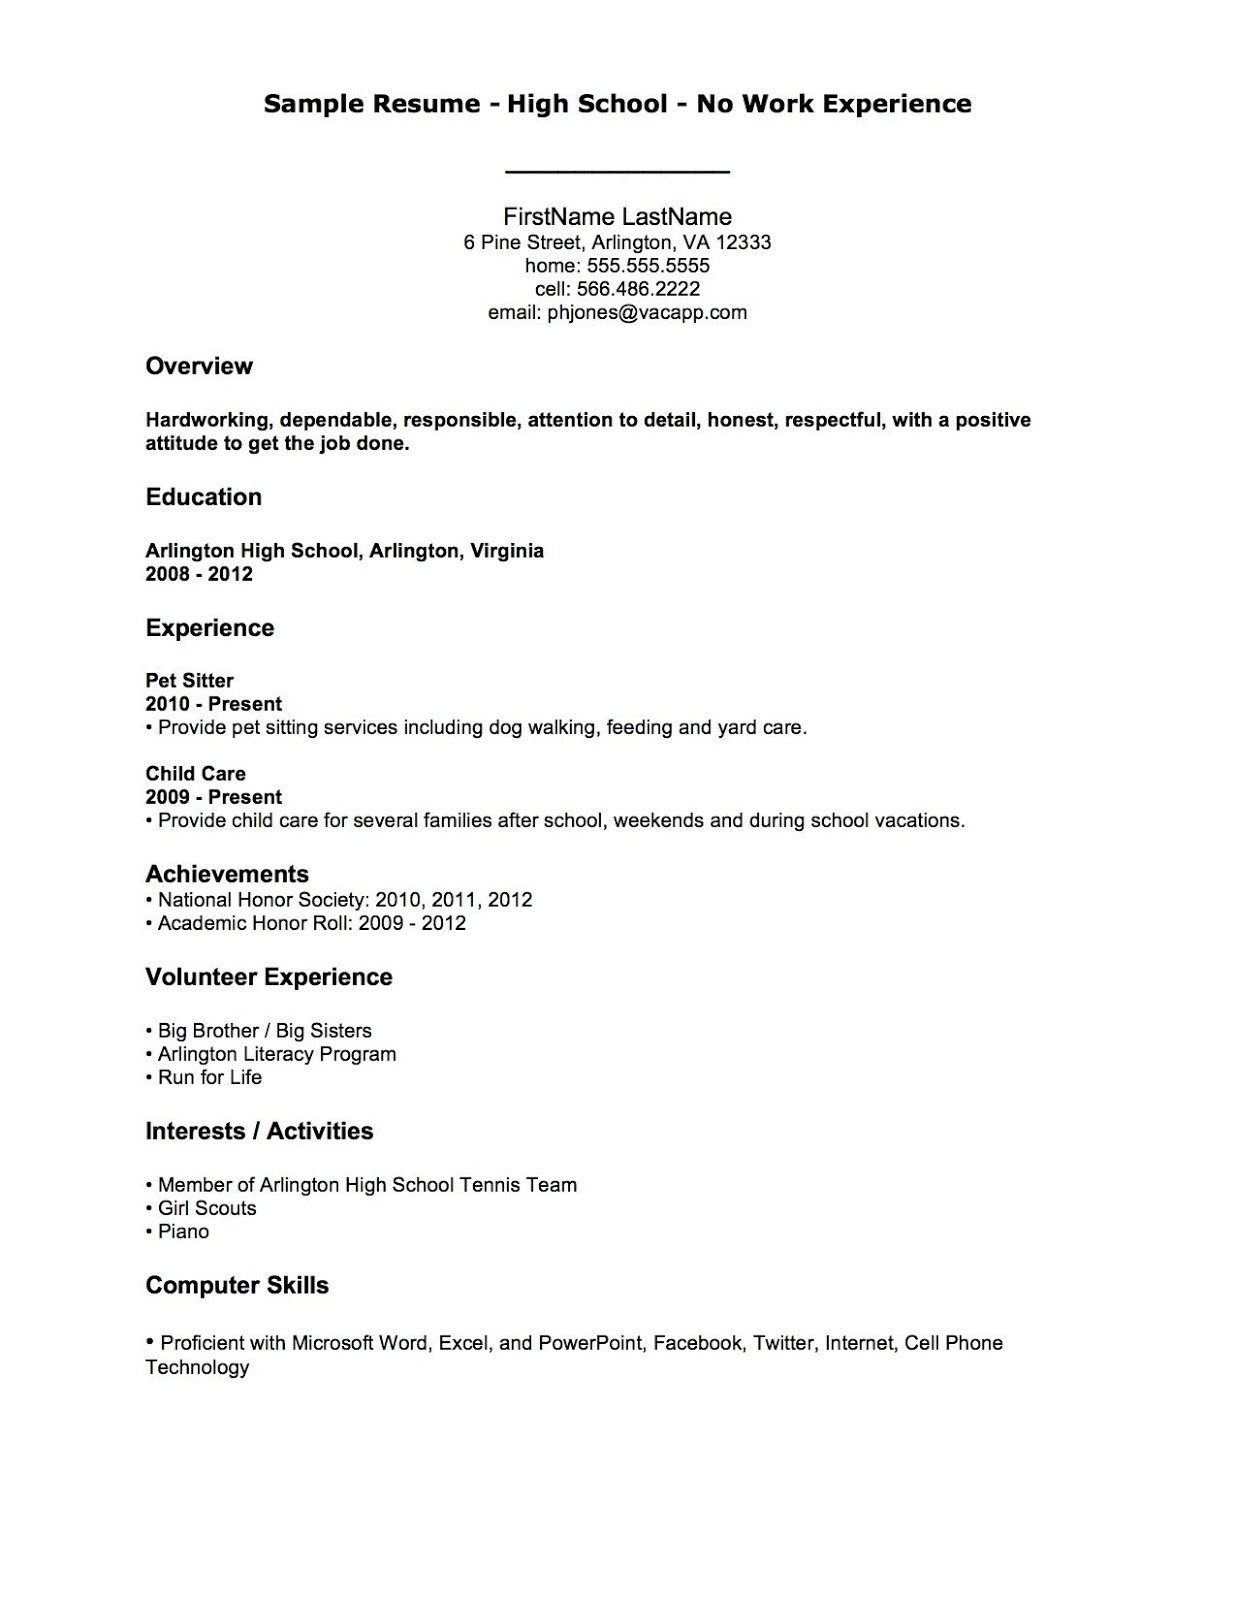 resume biography sample. Resume Example. Resume CV Cover Letter